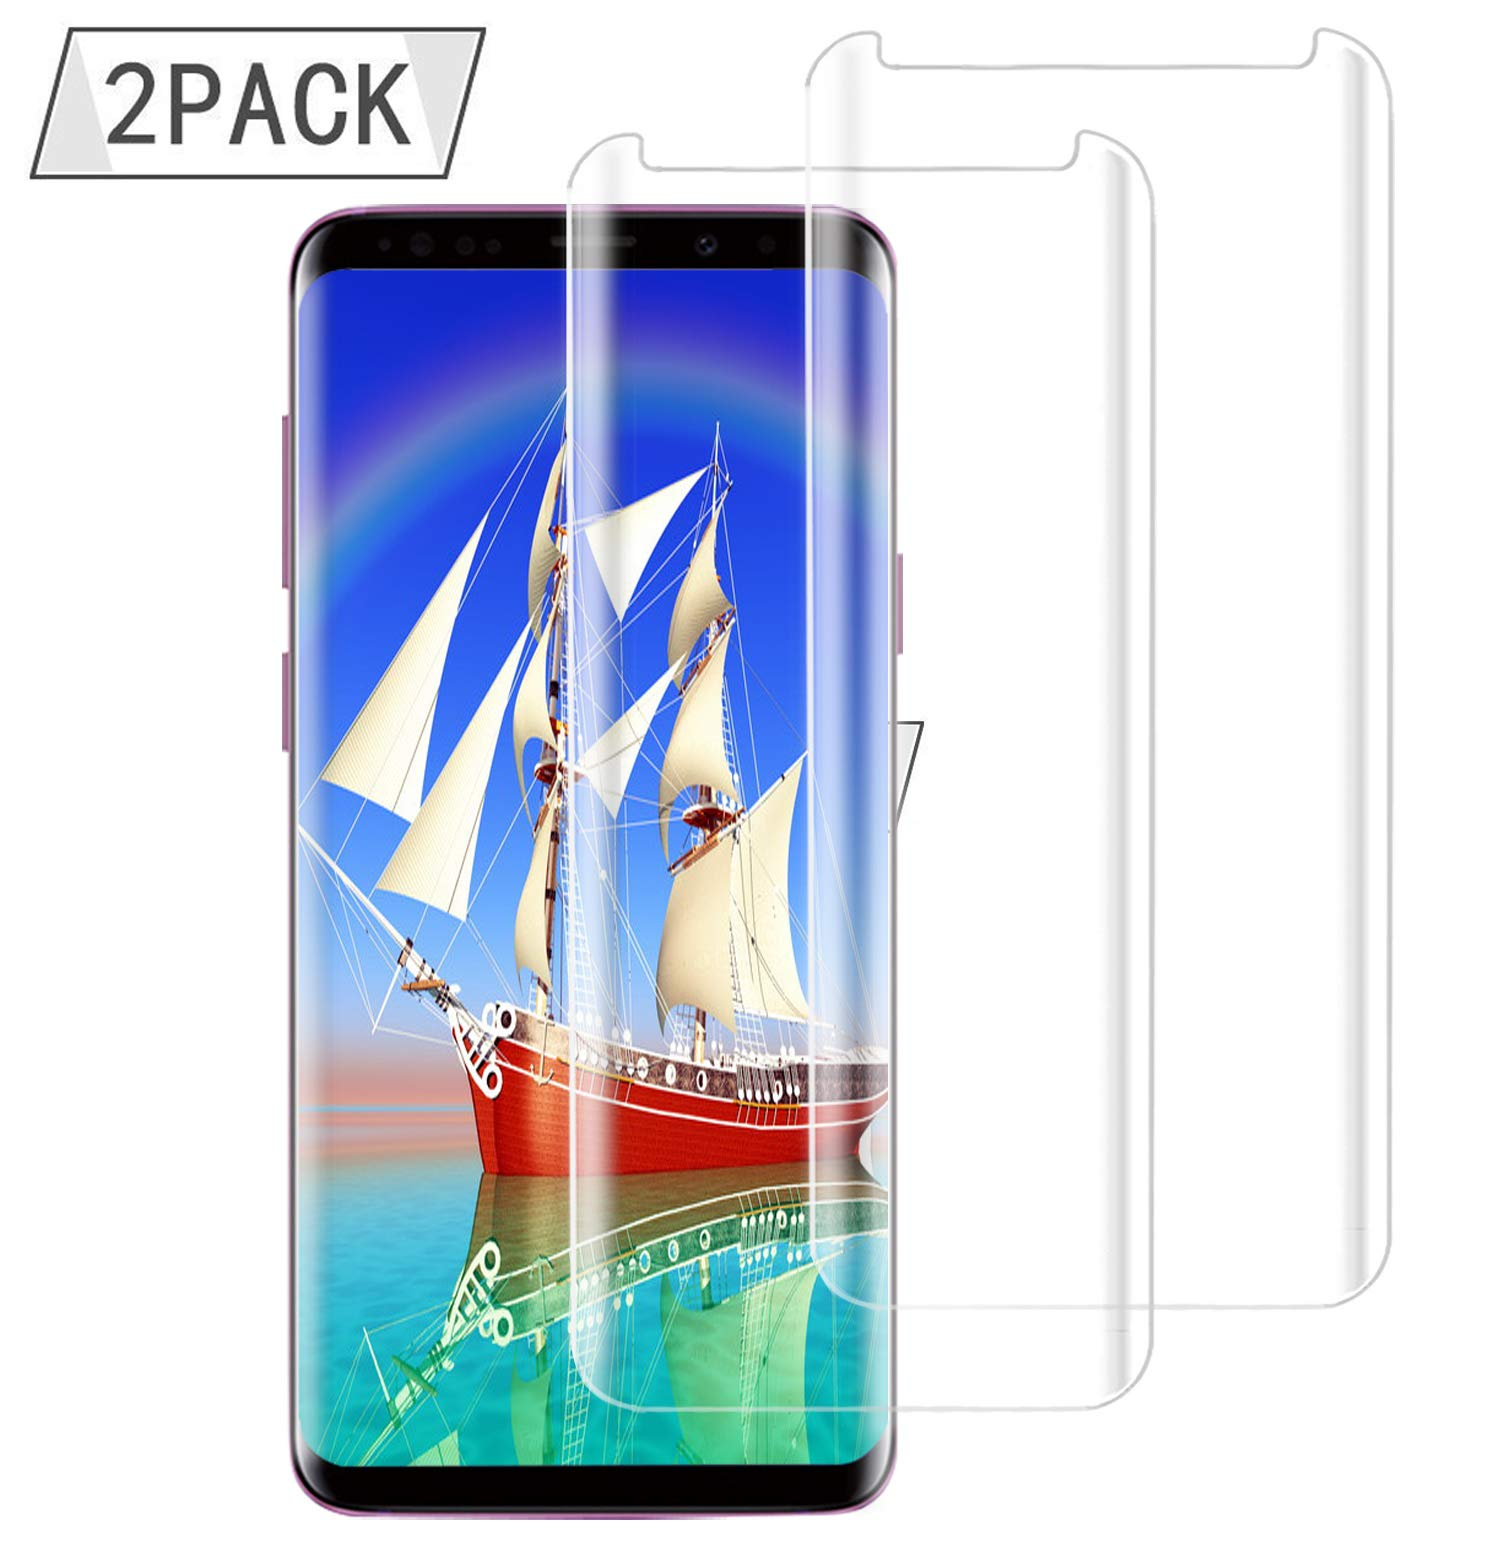 9H Hardness,Anti-Fingerprint,Anti-Scratch,Ultra-Clear,Tempered Glass Screen Protector for Samsung S9 Plus for Samsung Galaxy S9 Plus Screen Protector 2Pack